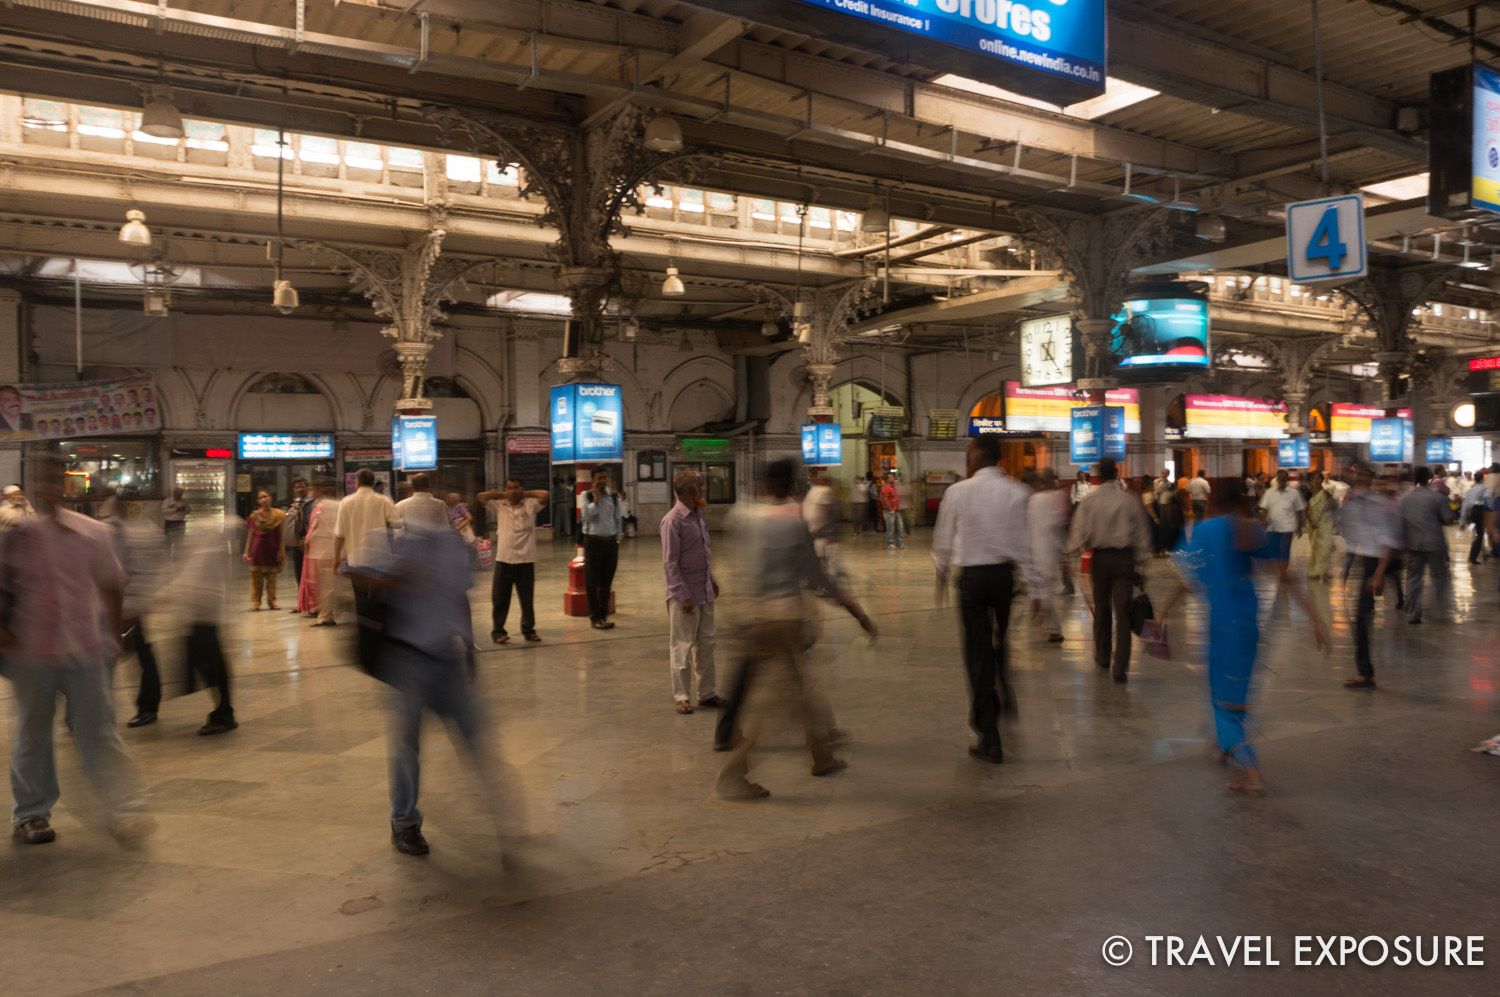 Inside the Chhatrapati Shivaji Terminus, formerly known as Victoria Terminus Station, in Mumbai